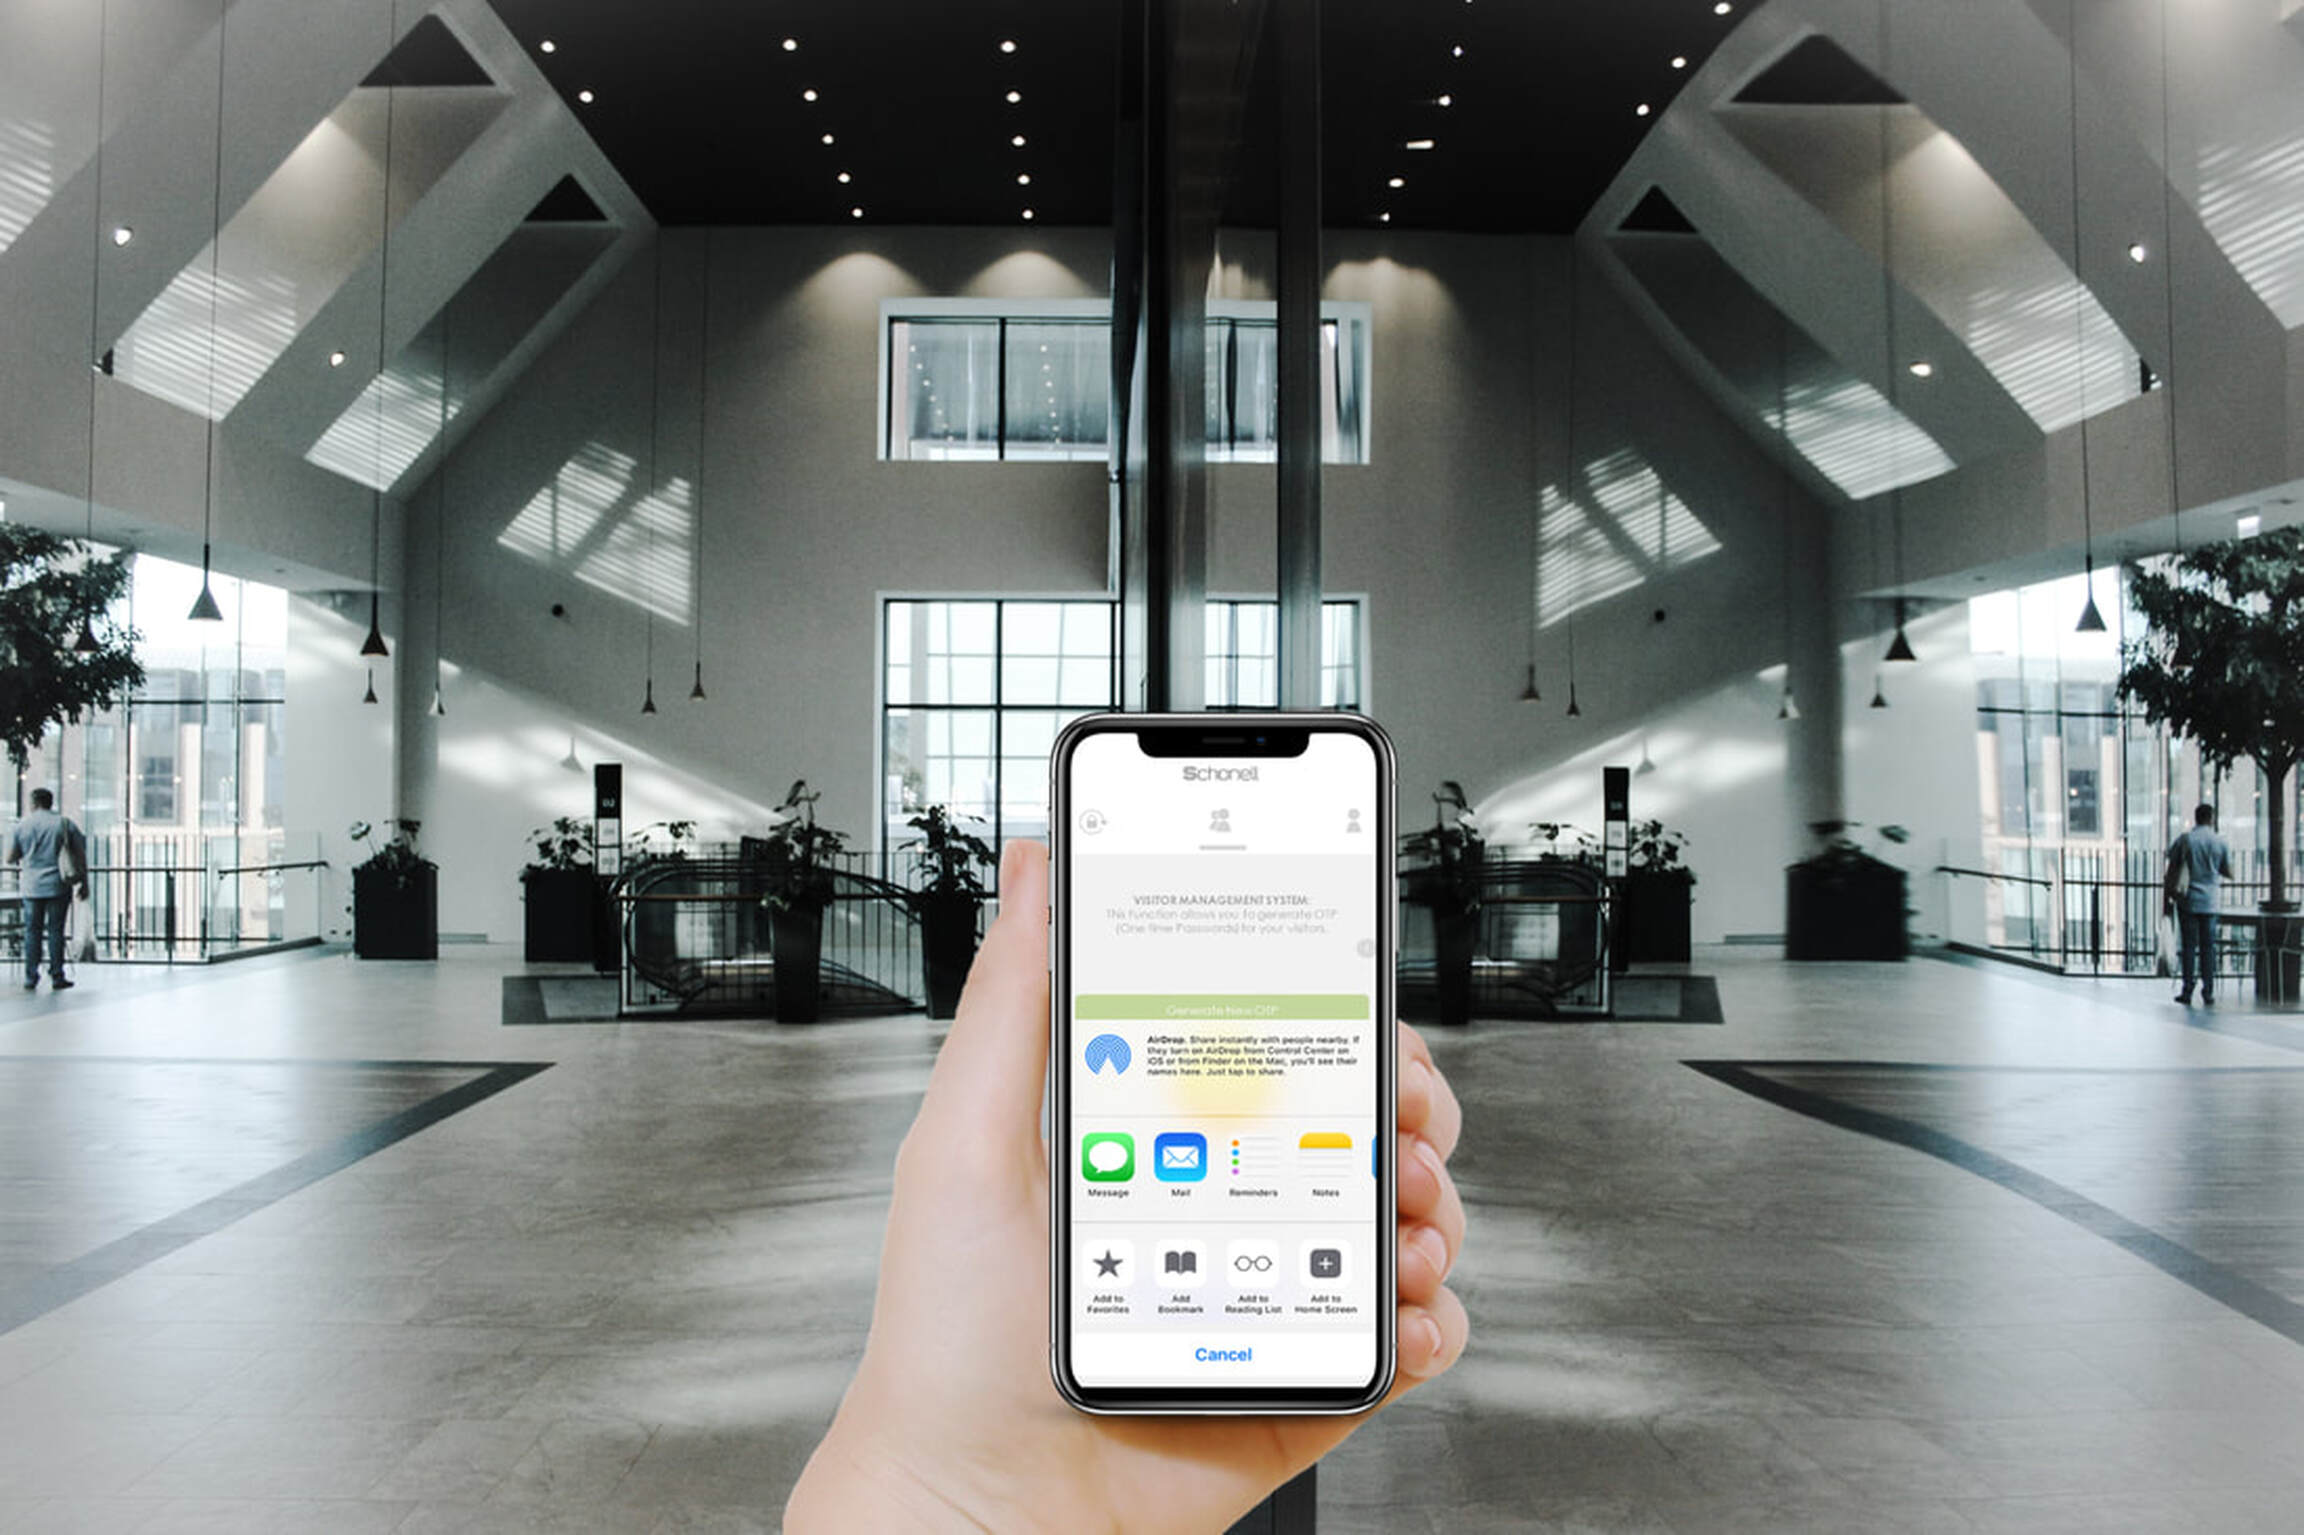 Visitor Management System | App | Access Control | Automated Security